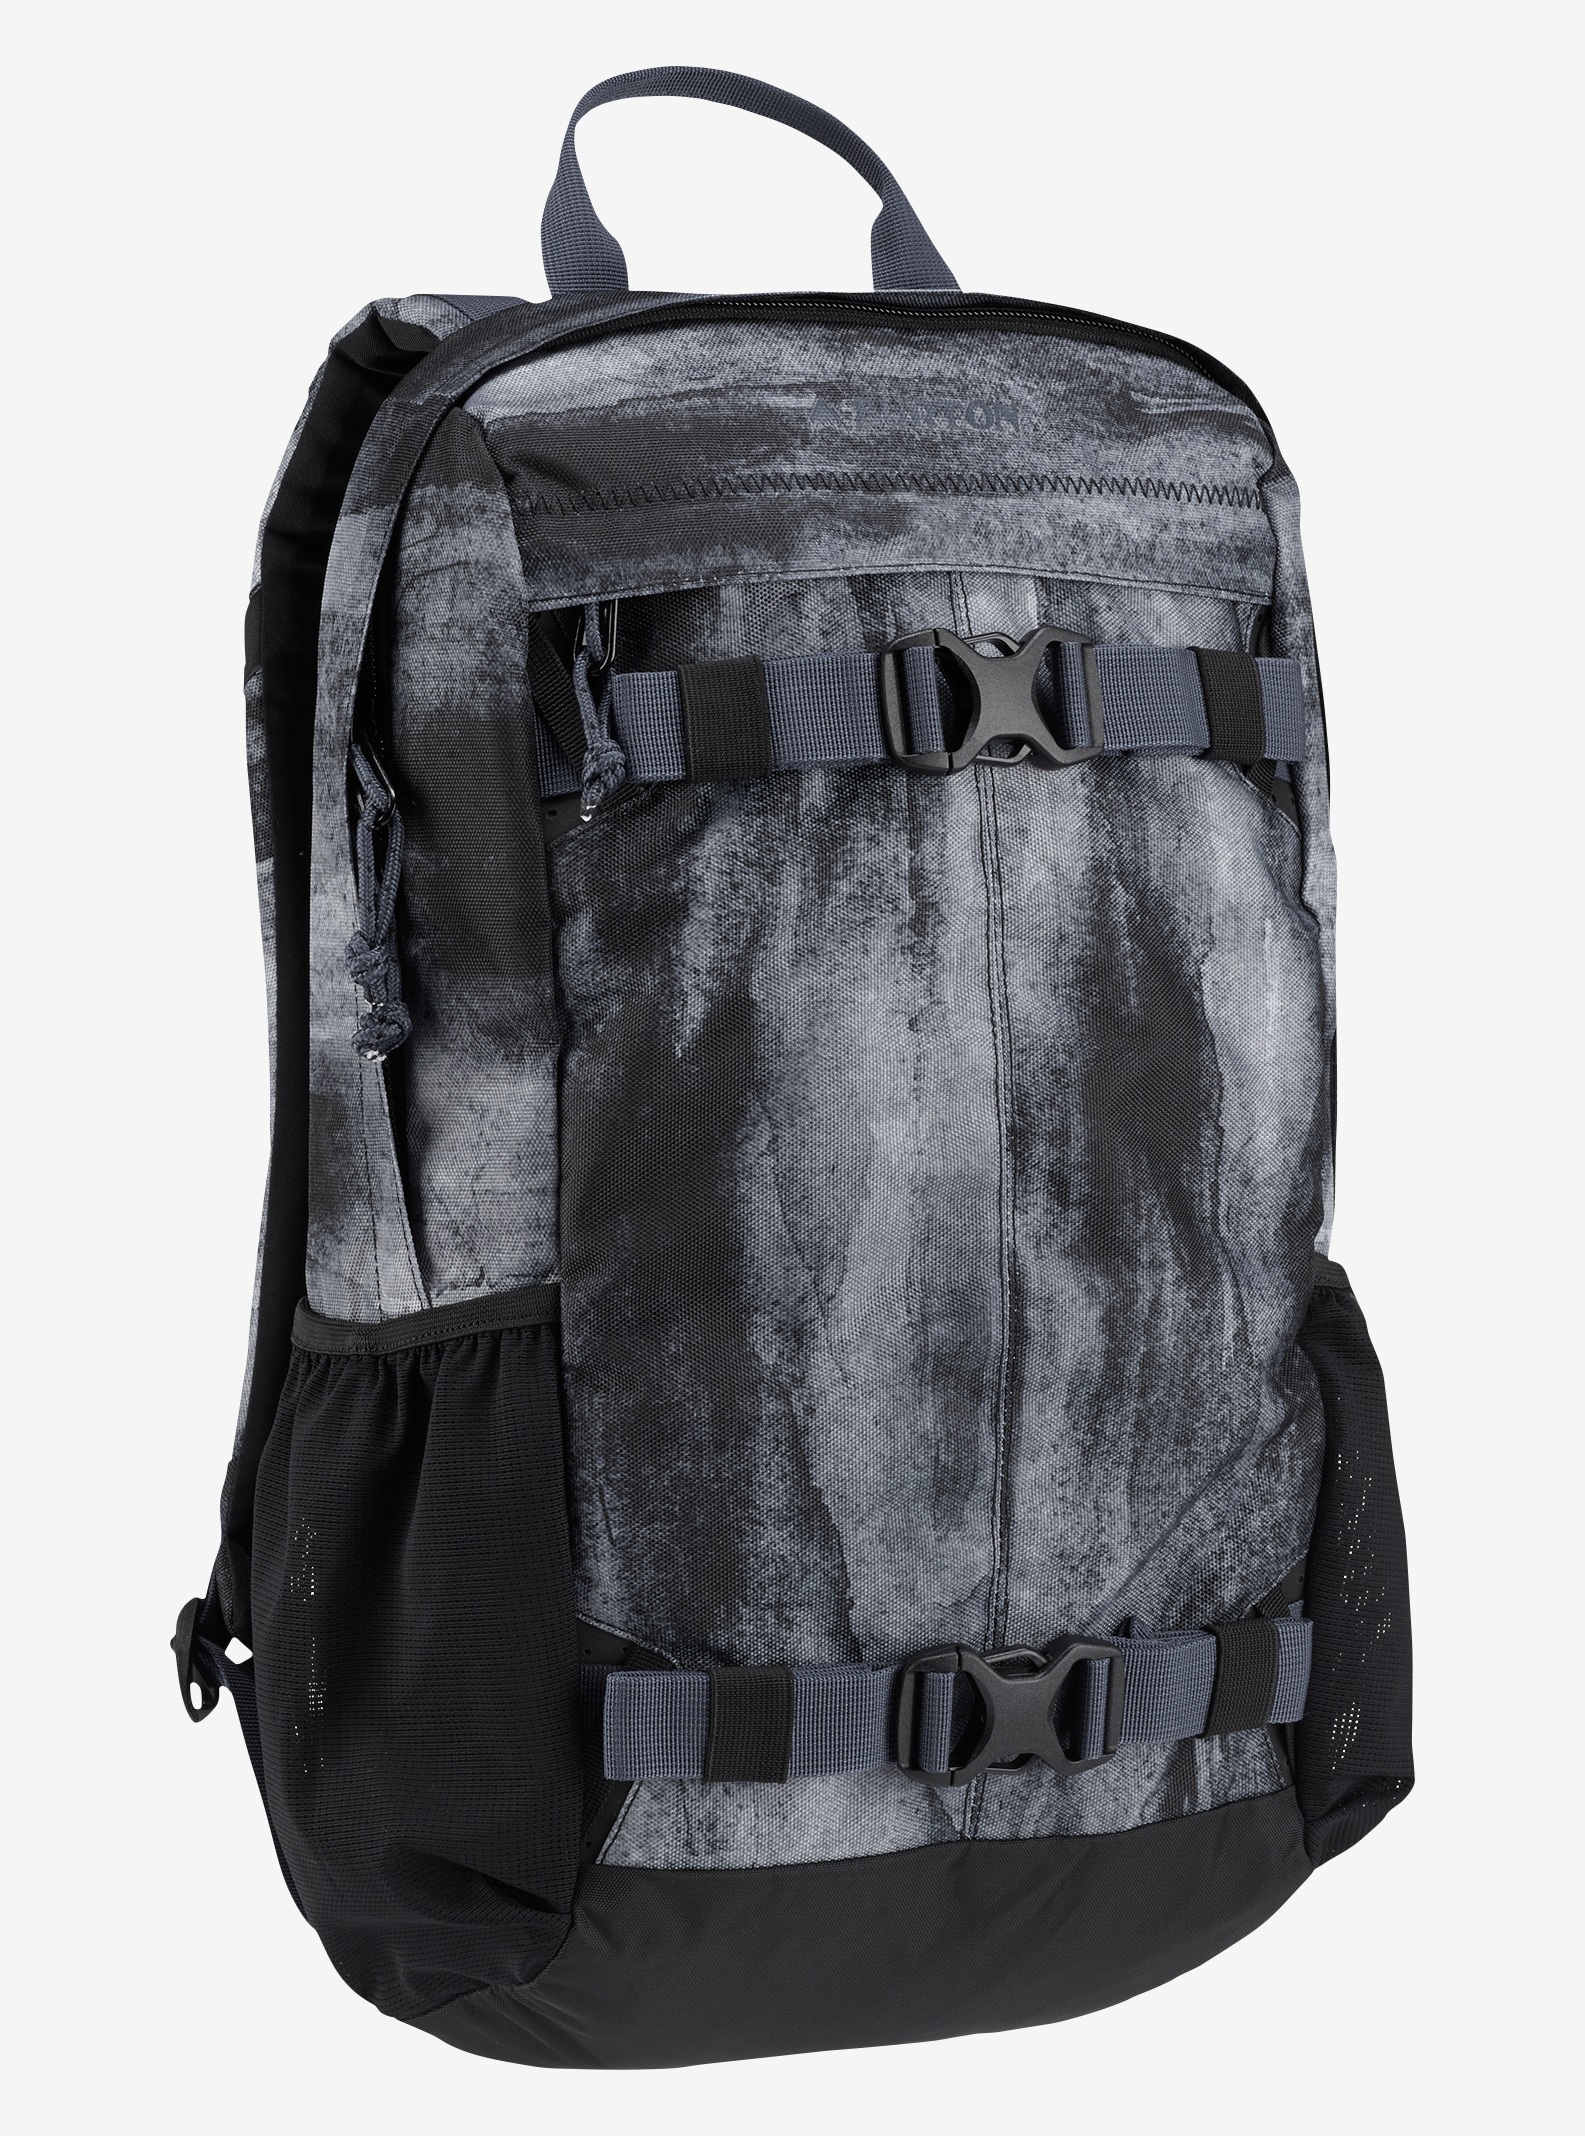 Burton Women's Timberlite 15L Backpack shown in True Black Sedona Print